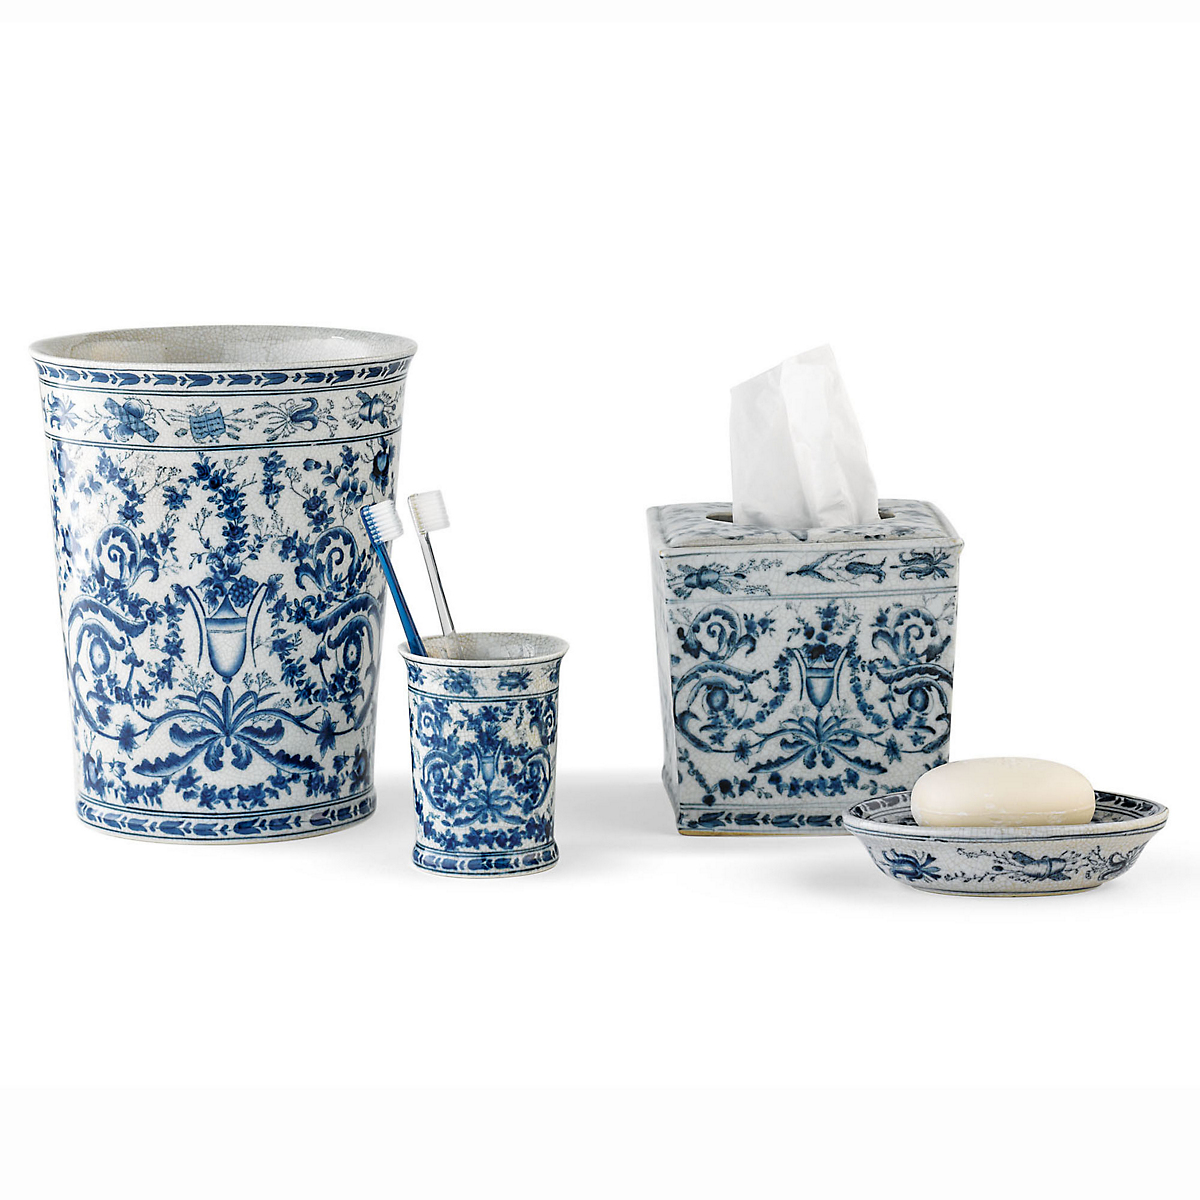 blue white bath accessories - White Bathroom Accessories Ceramic